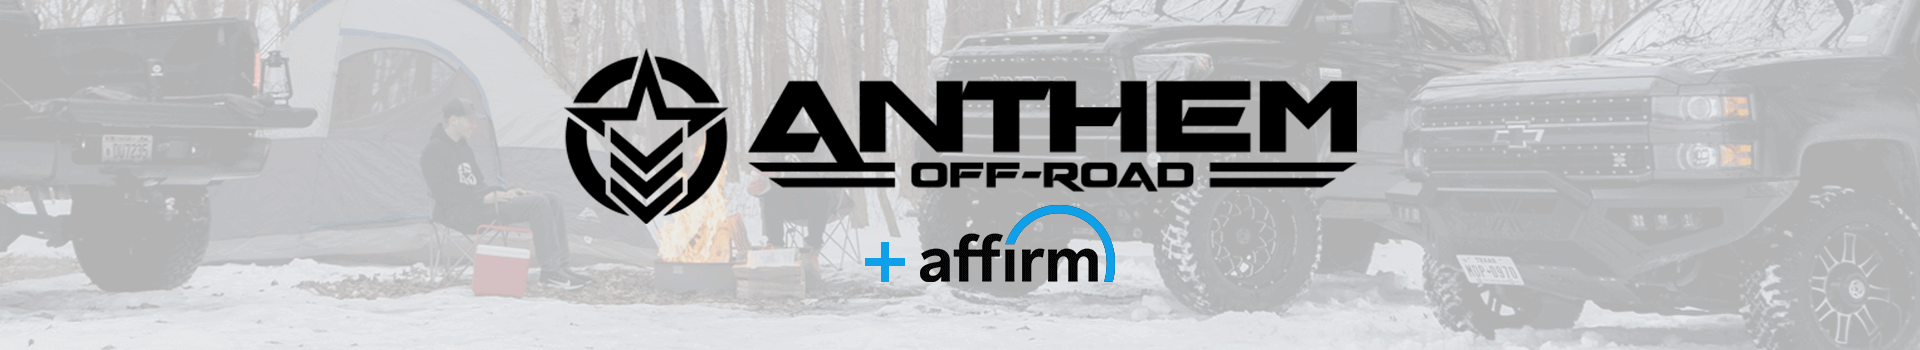 Anthem Off-Road offers financing through Affirm